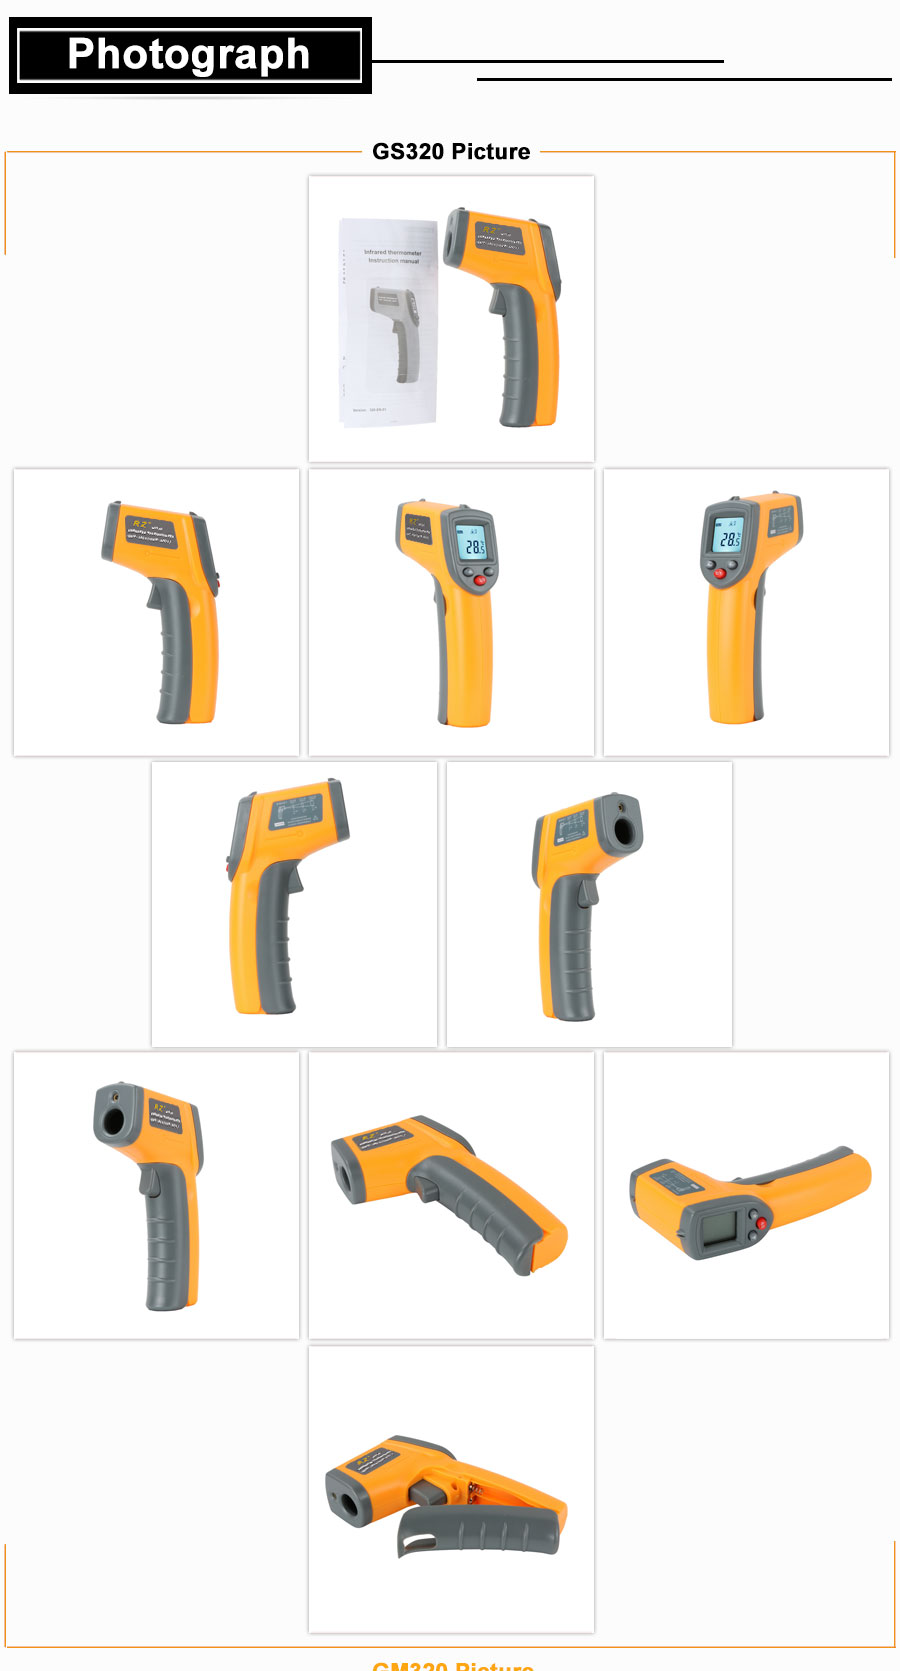 H31379d76e4ff46338663953f5b976b8ar RZ IR Infrared Thermometer Thermal Imager Handheld Digital Electronic Outdoor Non-Contact Laser Pyrometer Point Gun Thermometer